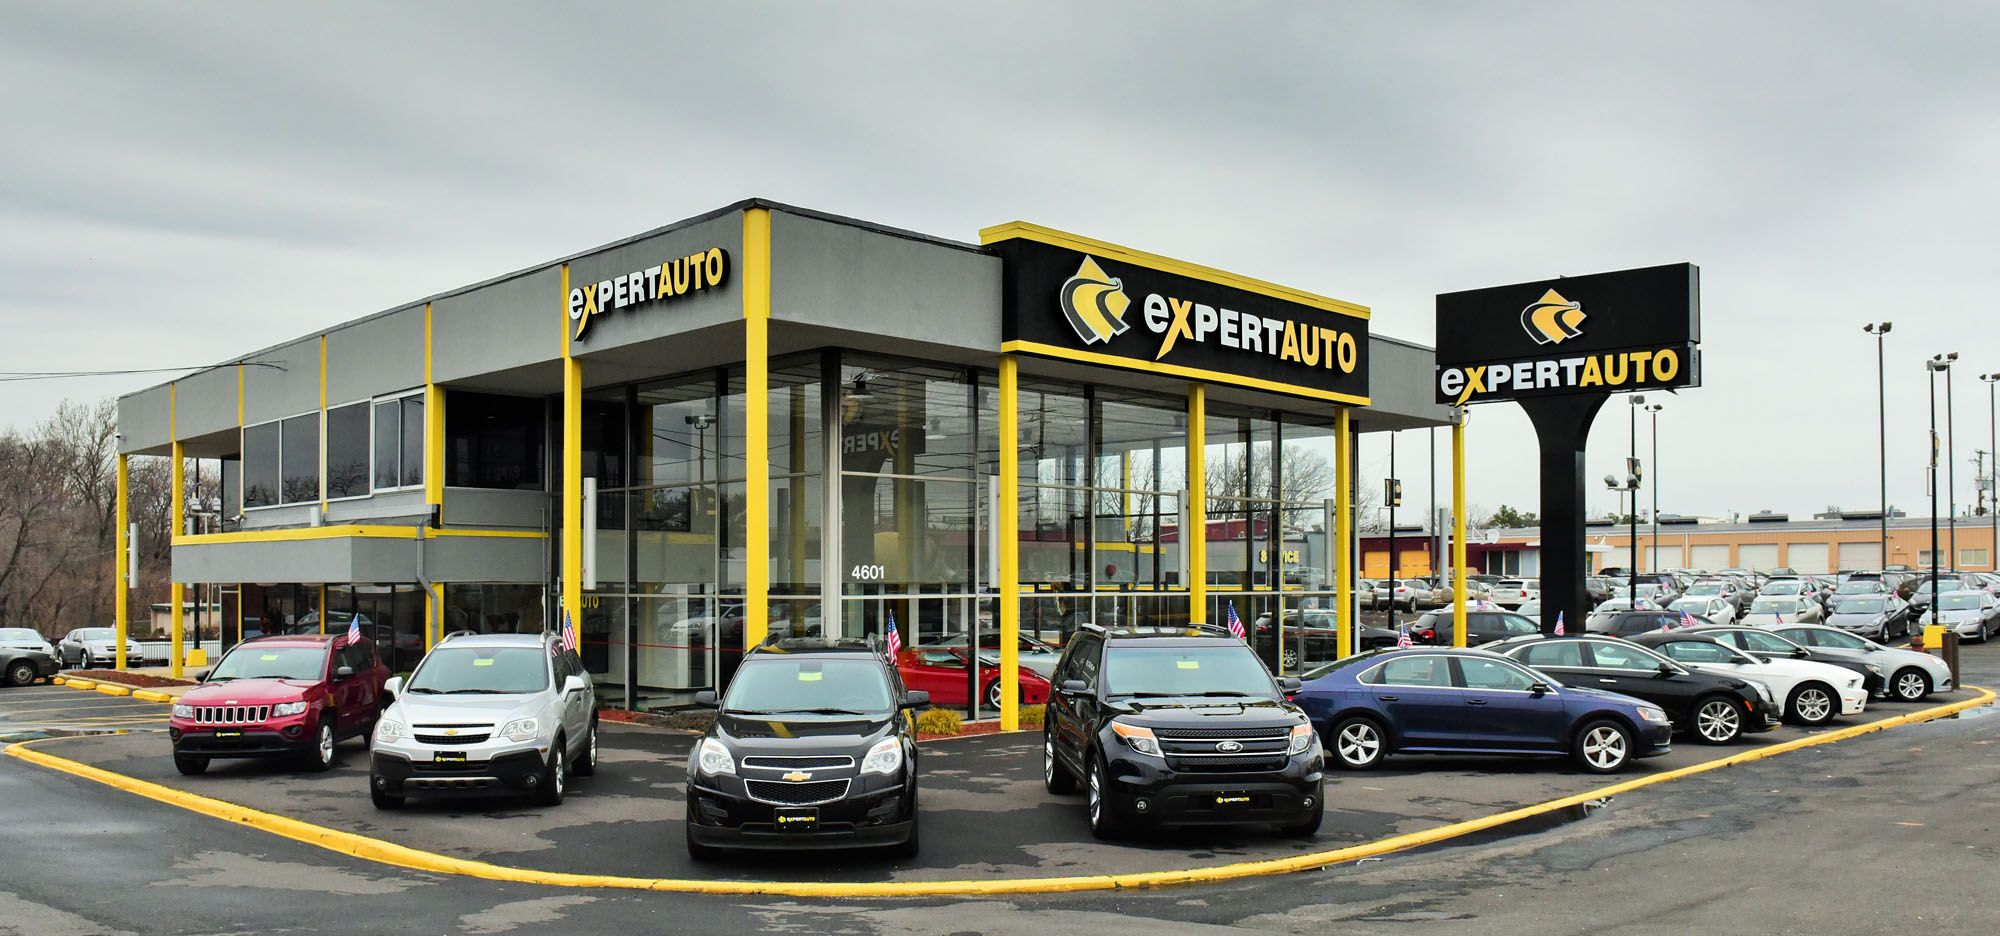 Used Car Dealership In Capitol Heights Car Dealership Car Dealership Design Building Design